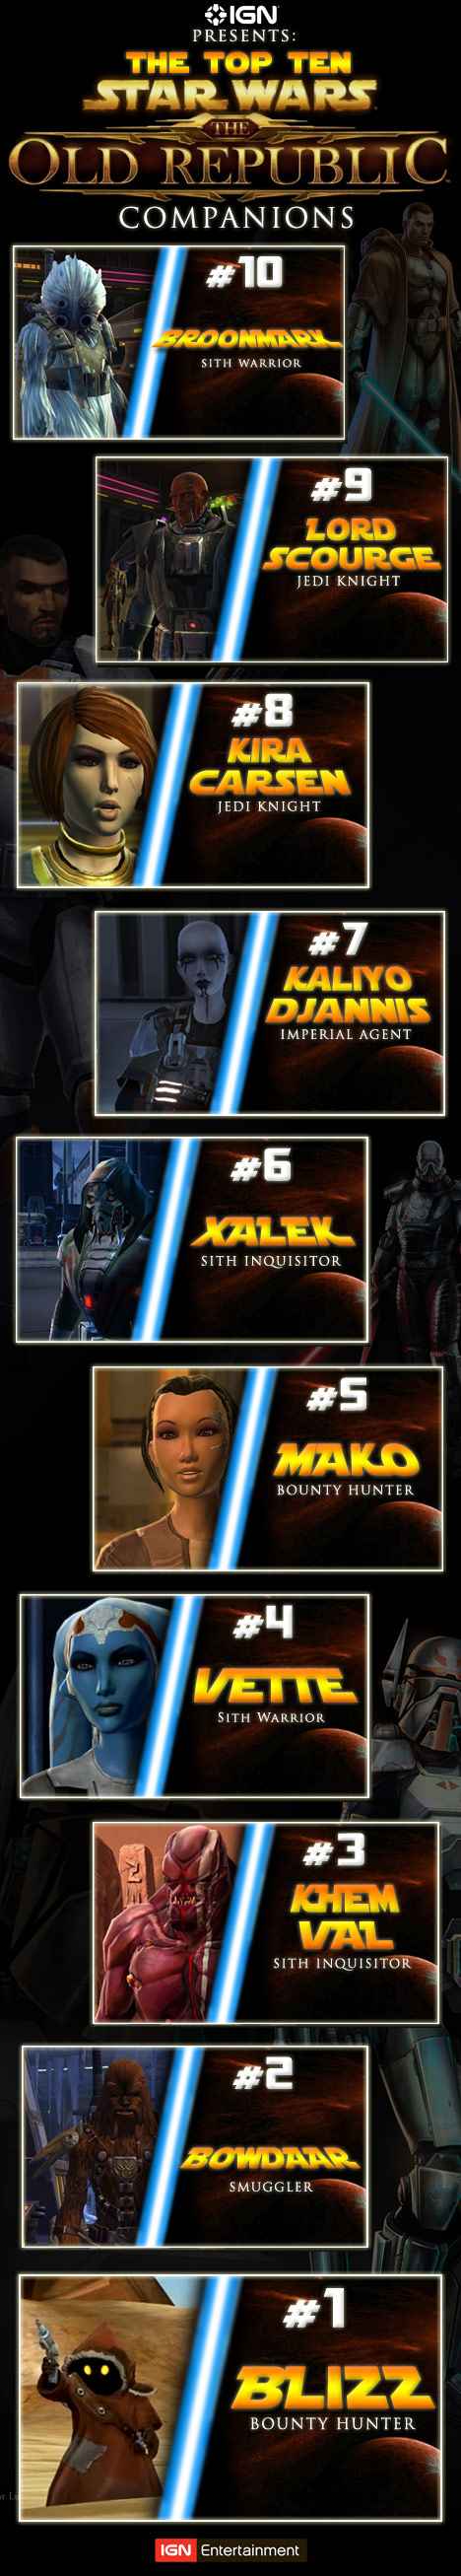 Top 10 SWTOR Companions as Voted by the Players